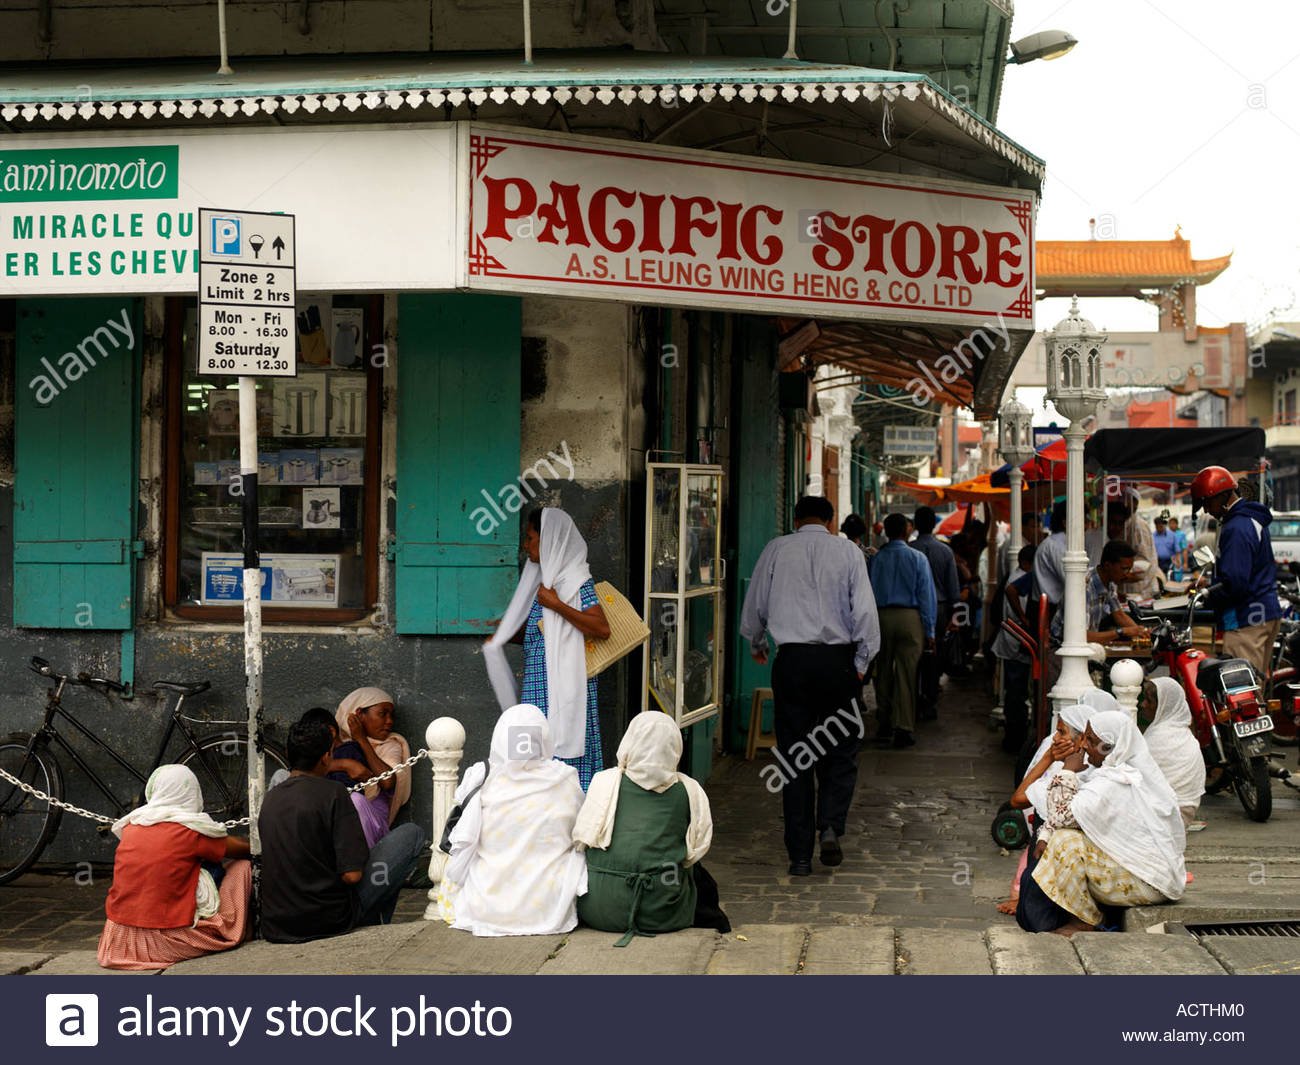 Chinatown Port Louis, Busy Street Pacific Store Parking Sign Chinatown Port Louis ...